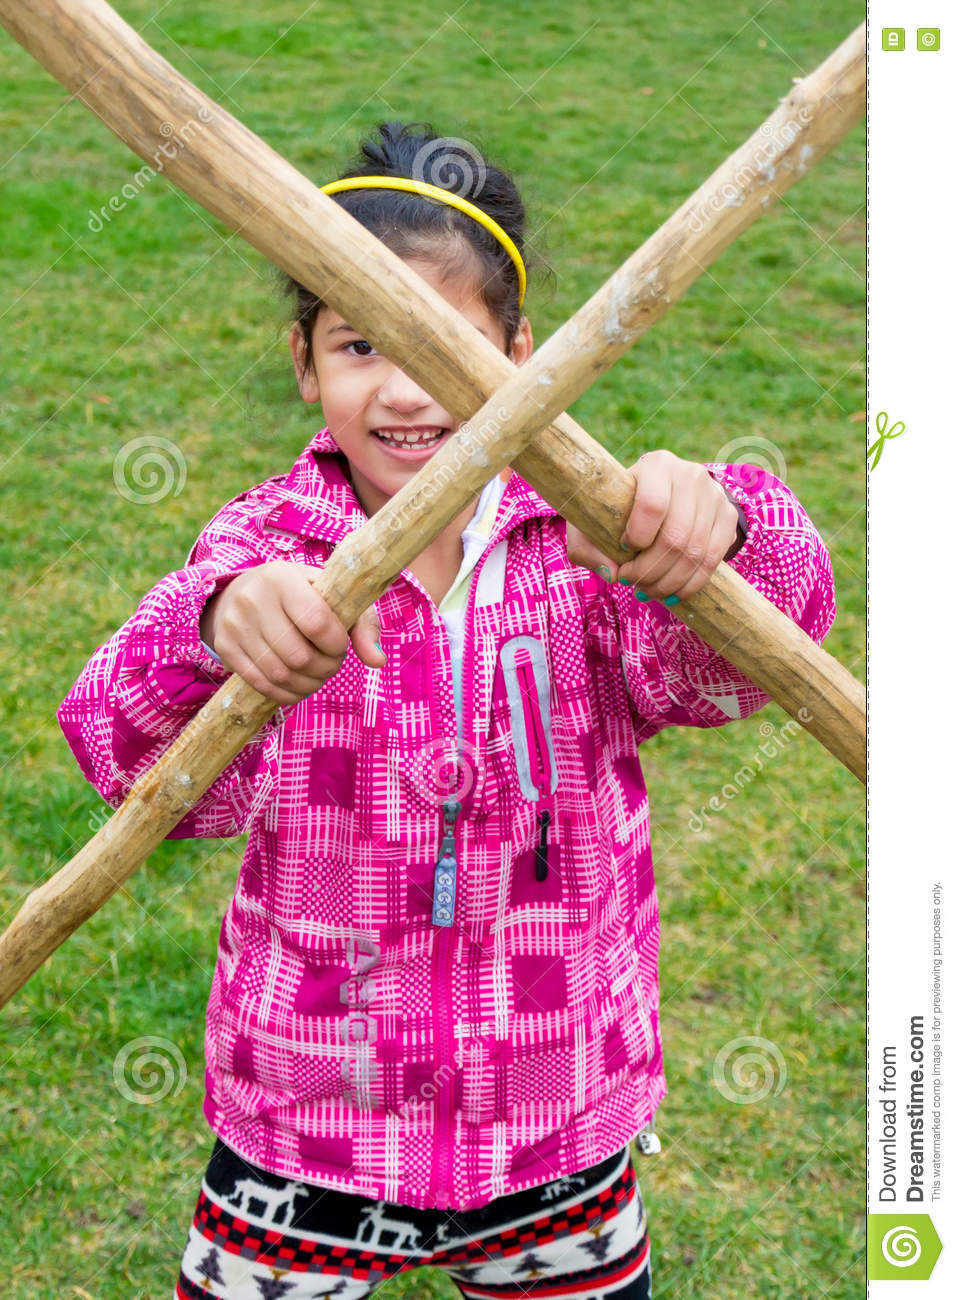 Little girl with wooden stick pole doing cross in fun fight